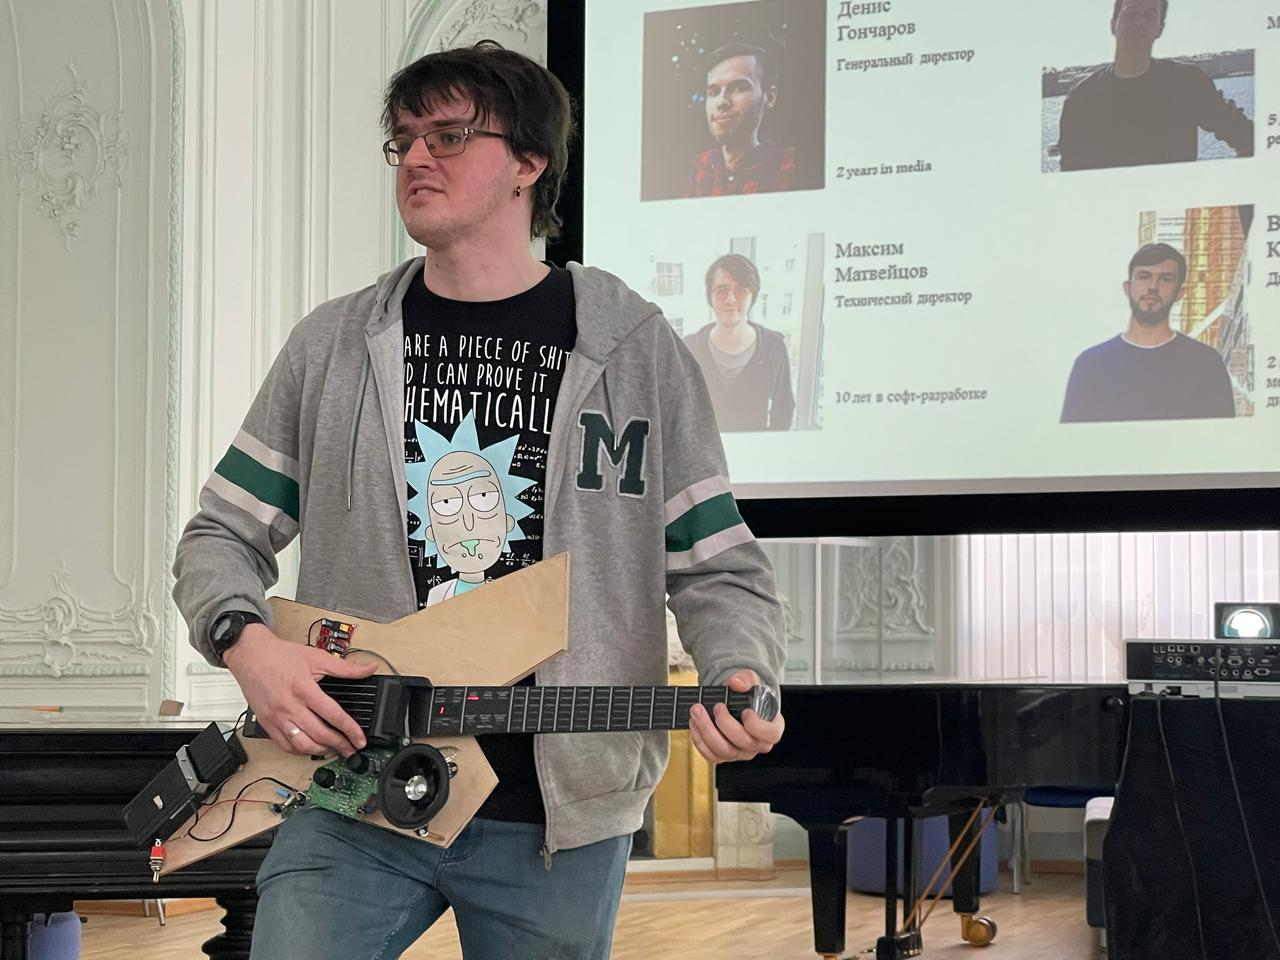 The Noli smart guitar is currently at the prototype stage of development